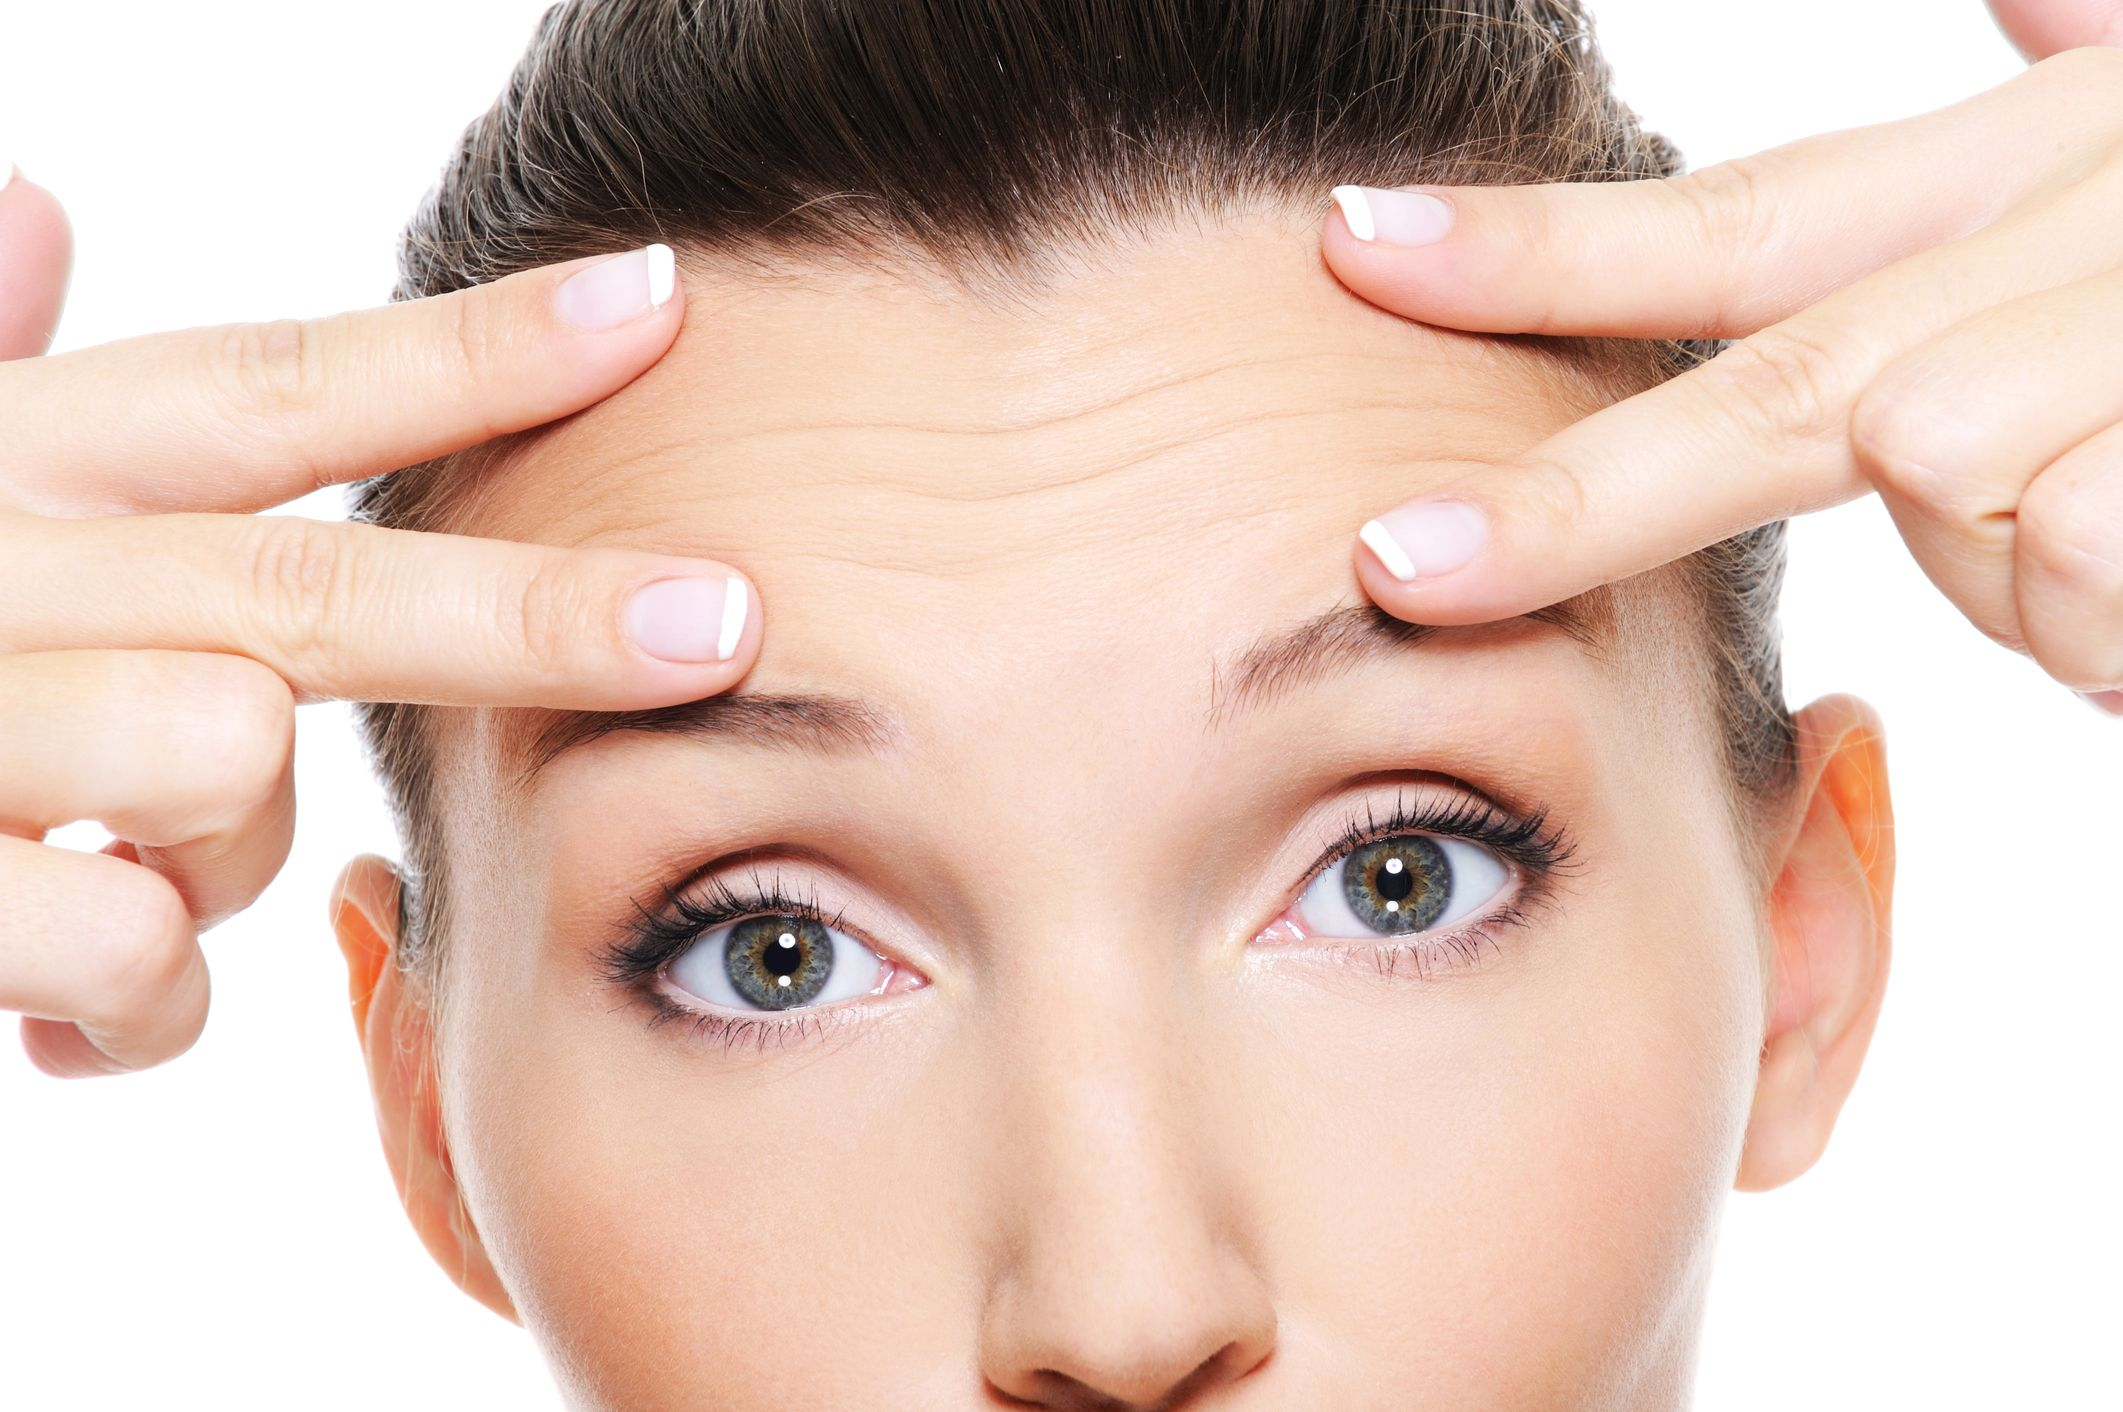 A woman pointing to the wrinkles in her forehead, which could be addressed via a brow lift